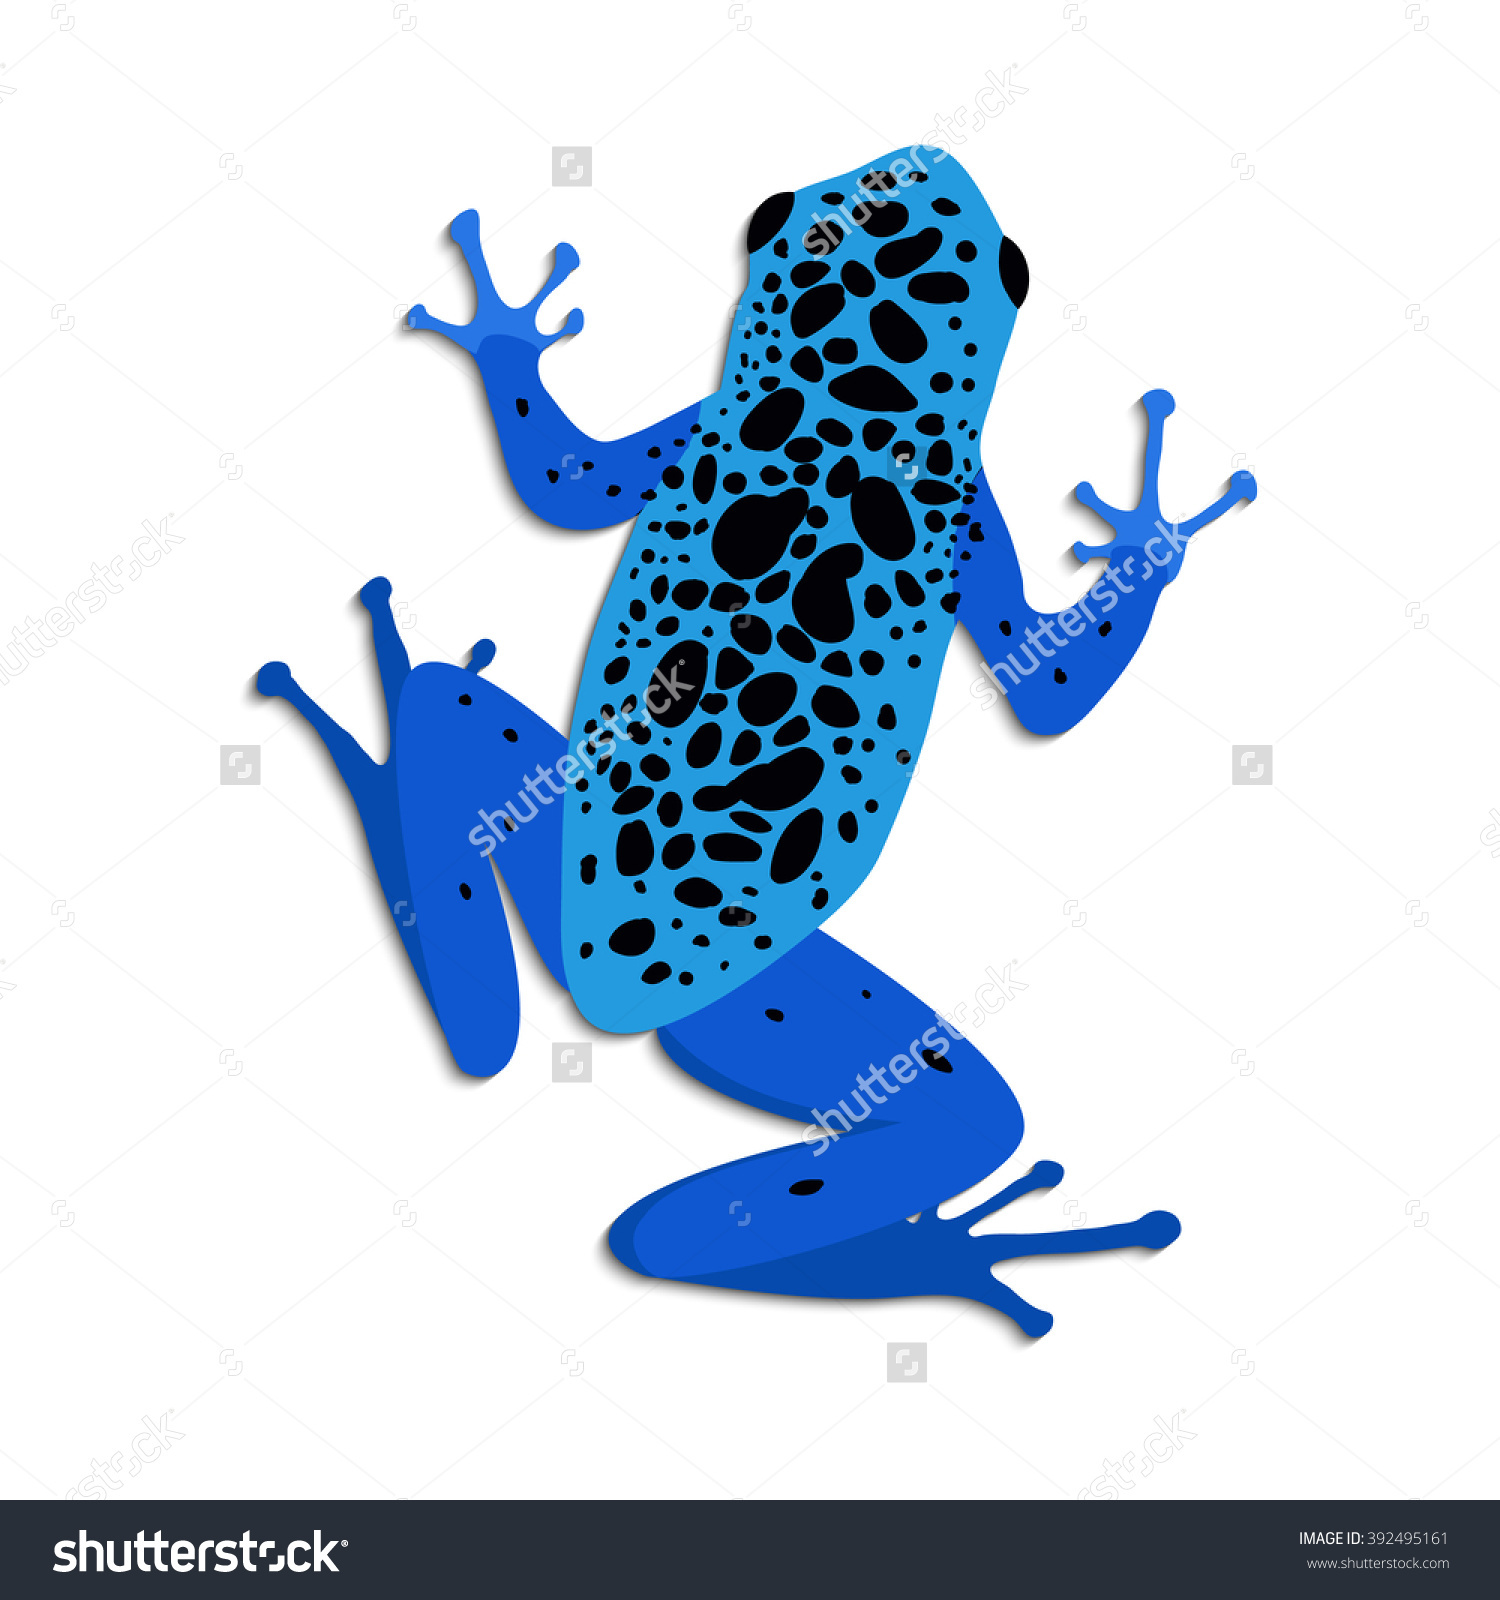 Blue Poison Dart Frog clipart #2, Download drawings